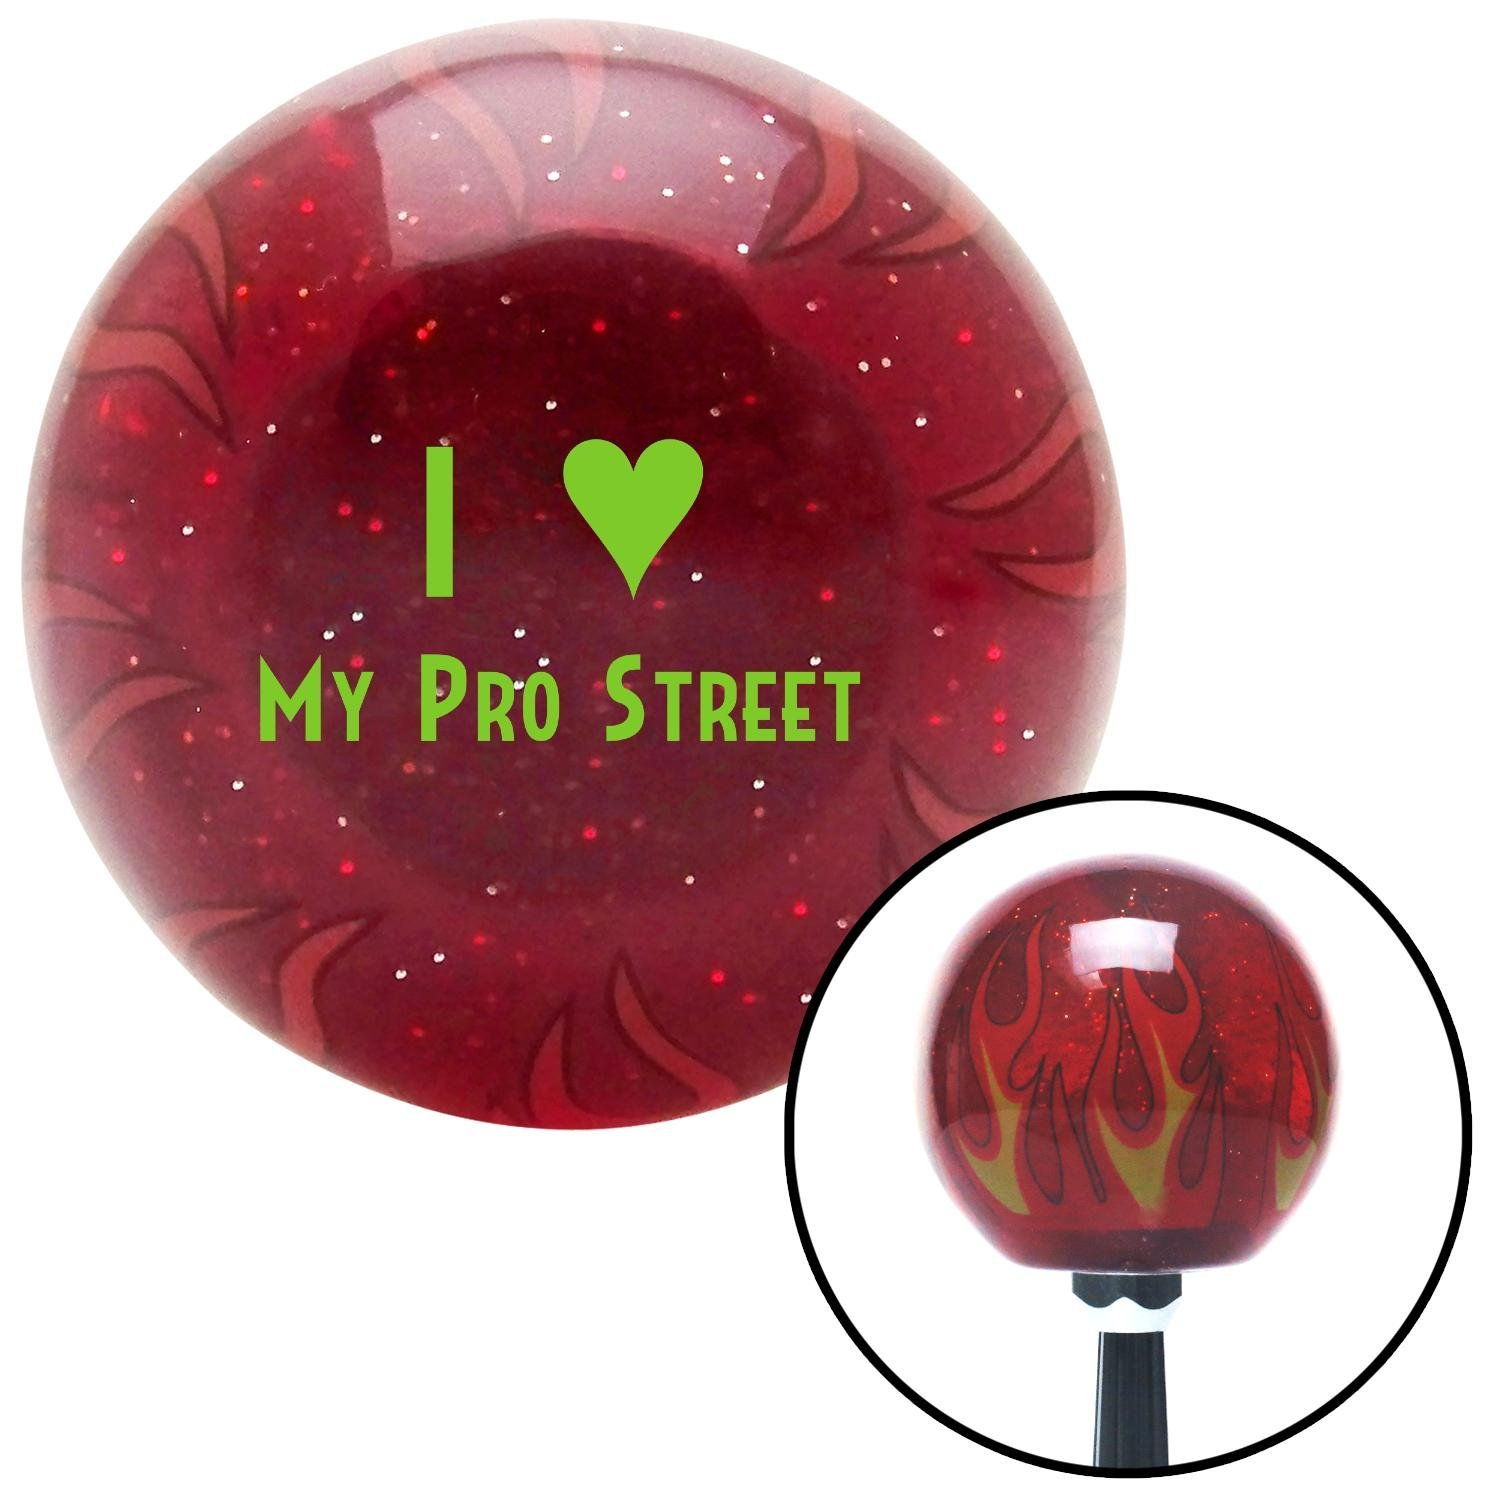 American Shifter 237418 Red Flame Metal Flake Shift Knob with M16 x 1.5 Insert Green I 3 My PRO Street